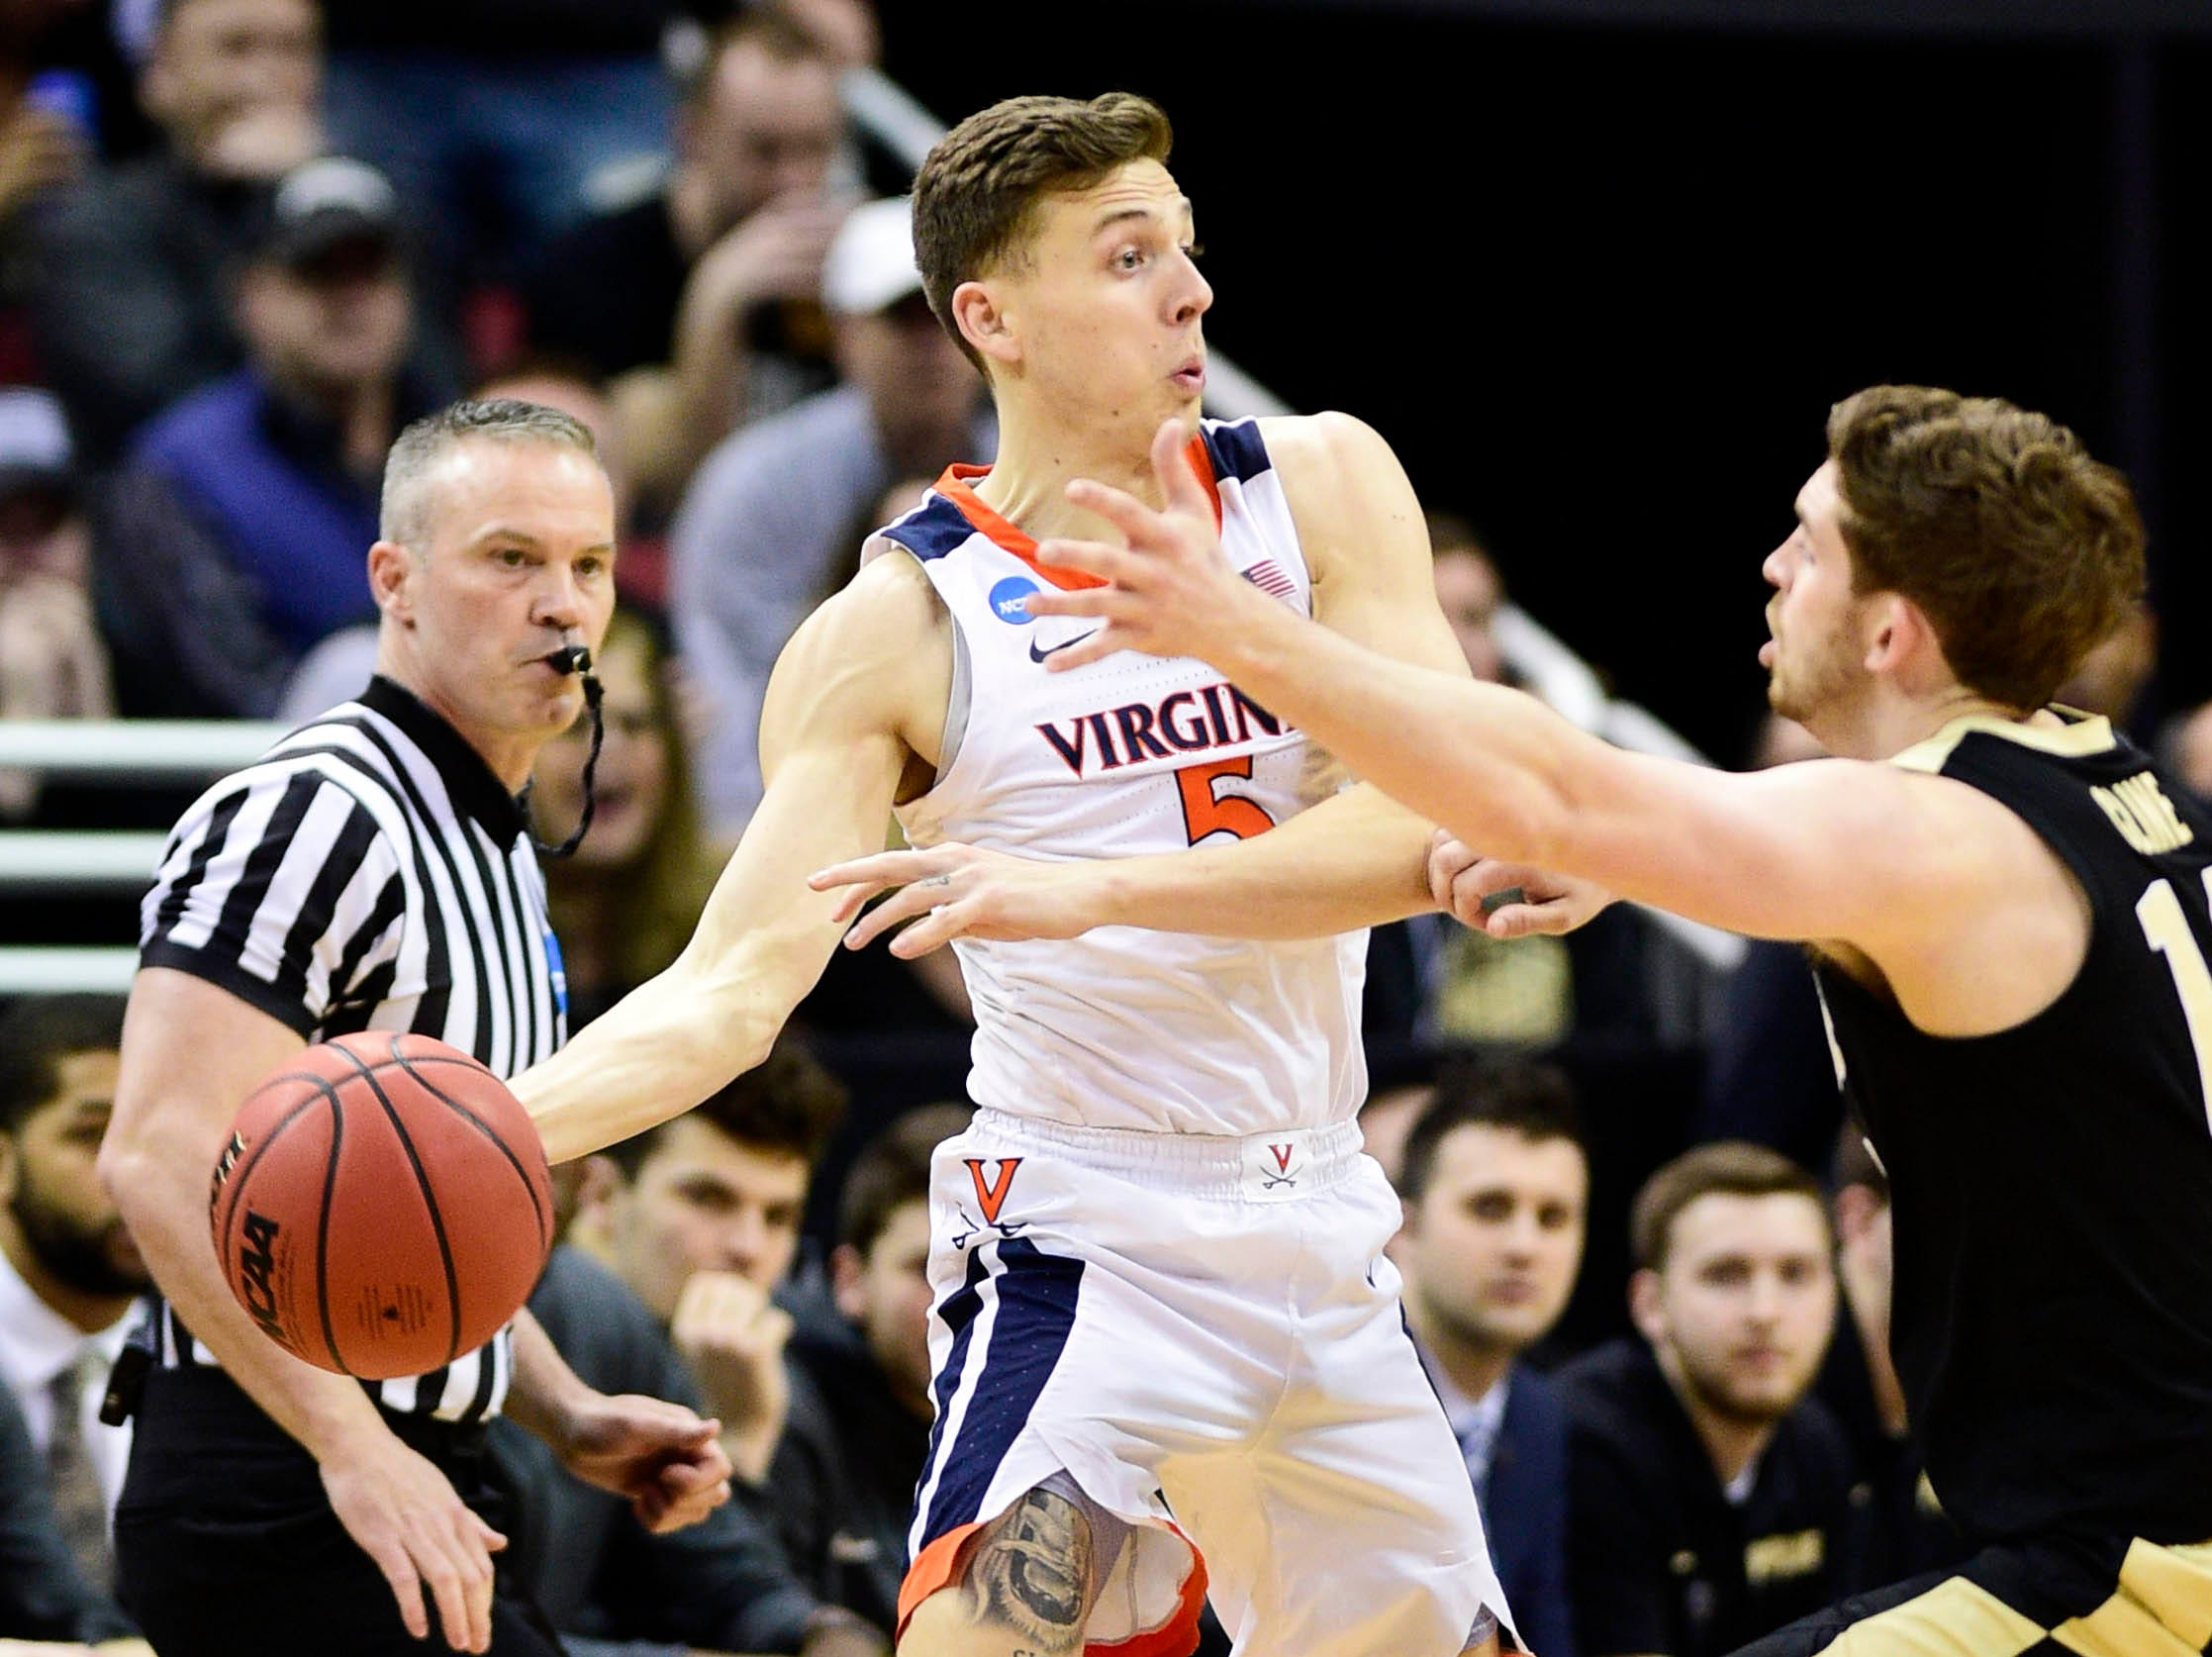 Mar 30, 2019; Louisville, KY, United States; Virginia Cavaliers guard Kyle Guy (5) works around the defense of Purdue Boilermakers guard Ryan Cline (14) during the first half in the championship game of the south regional of the 2019 NCAA Tournament at KFC Yum Center. Mandatory Credit: Thomas J. Russo-USA TODAY Sports